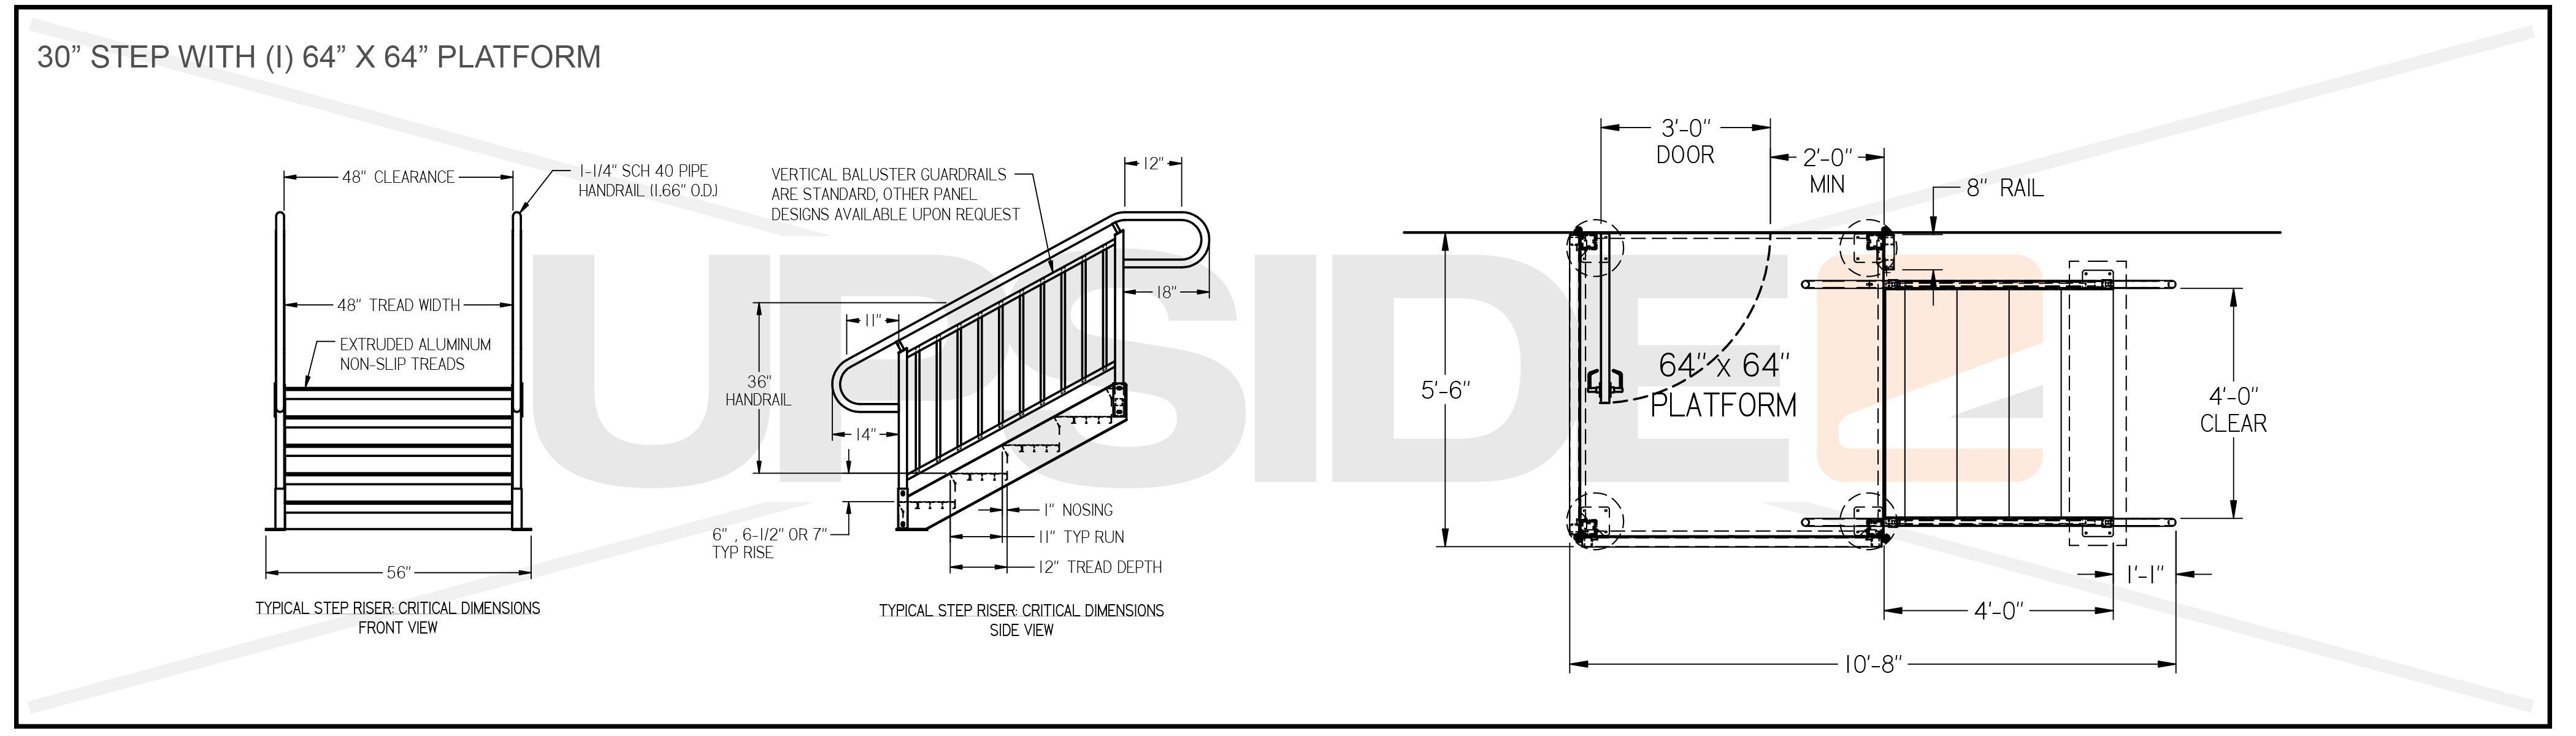 Means Of Egress Specifications Amp Drawings For Building